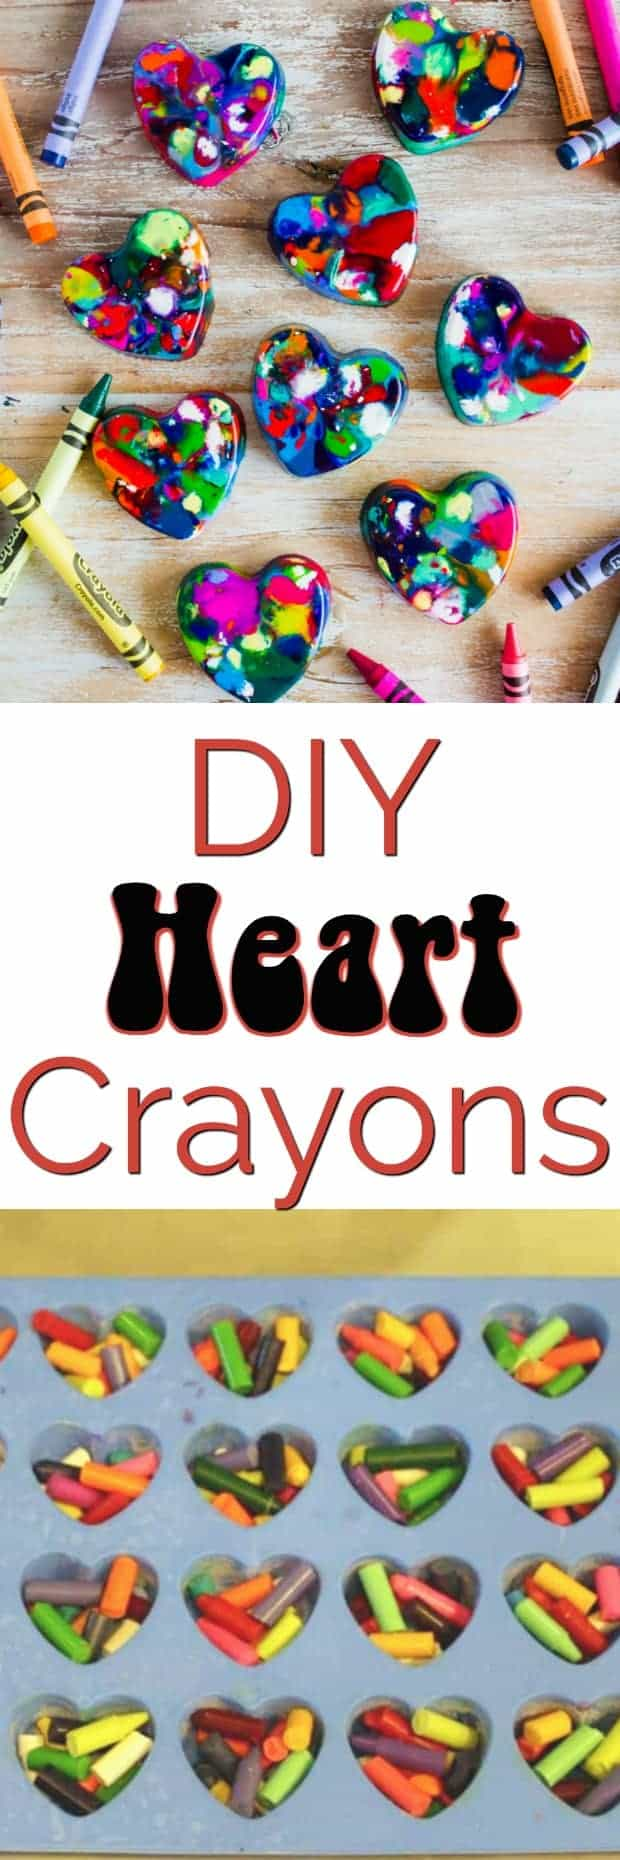 DIY Heart Crayons - the perfect homemade Valentine's Day project and gift to hand out at your child's classroom party